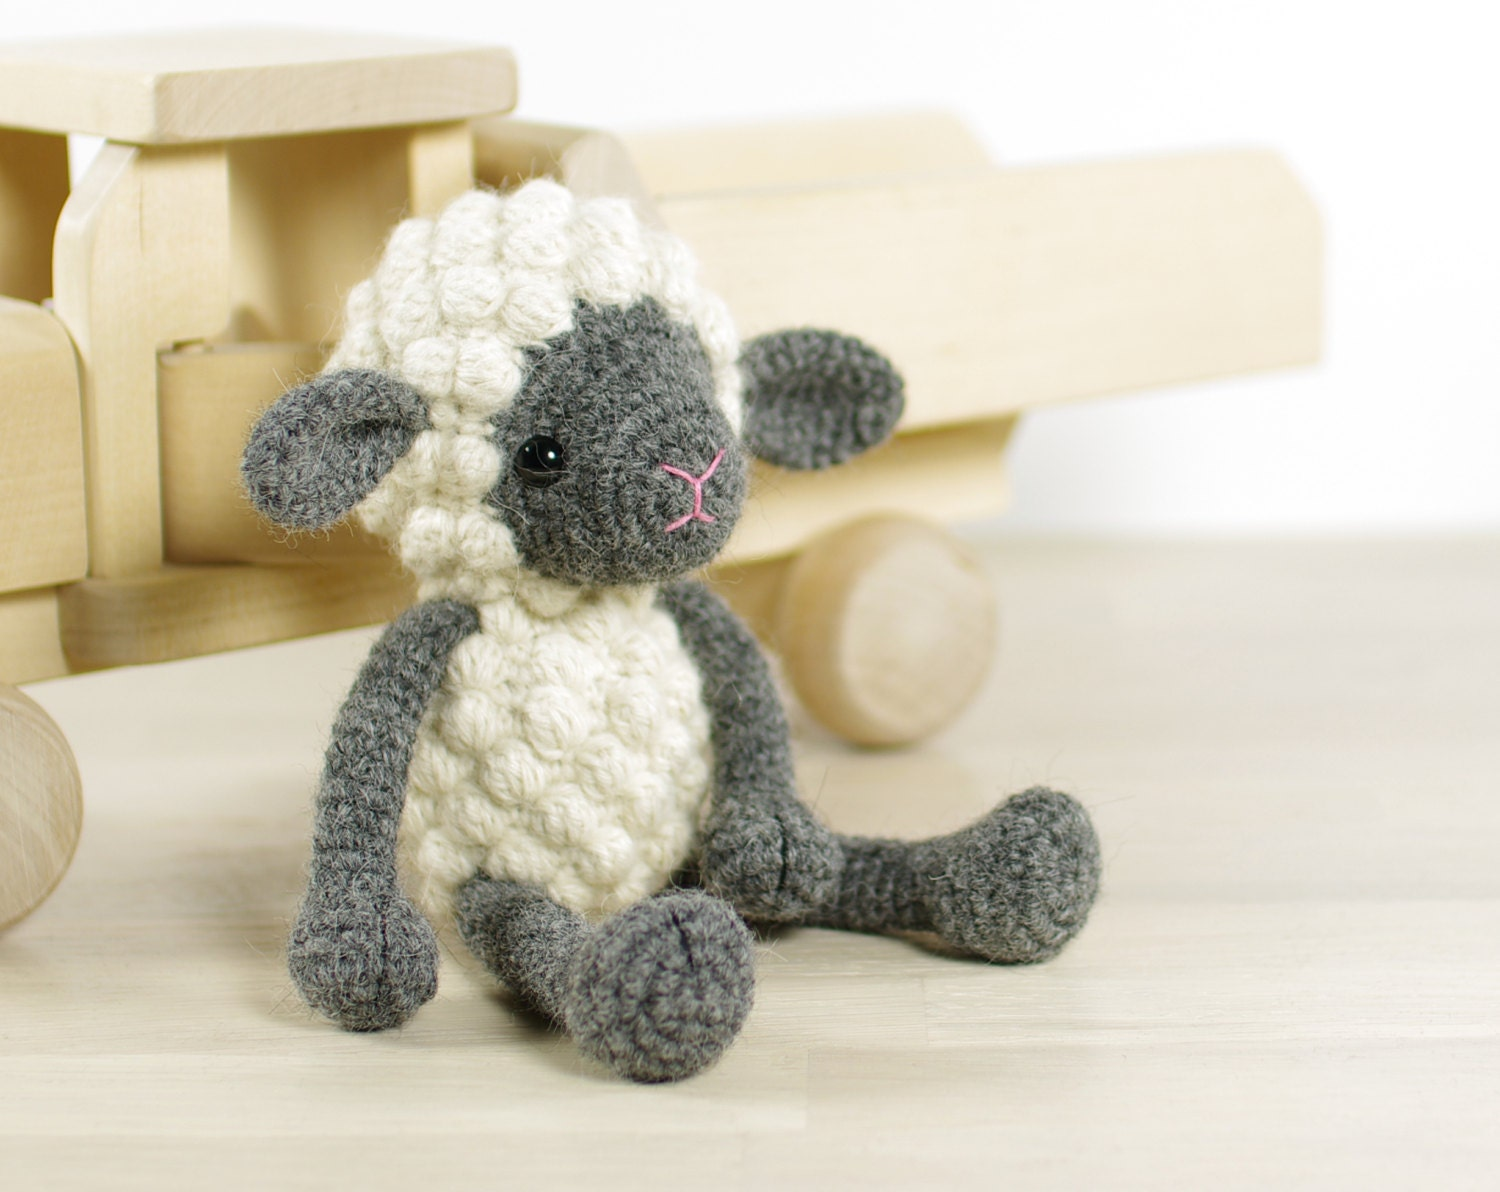 Amigurumi Plane Baby Mobile : PATTERN: Small sheep Crochet pattern with photos EN-068